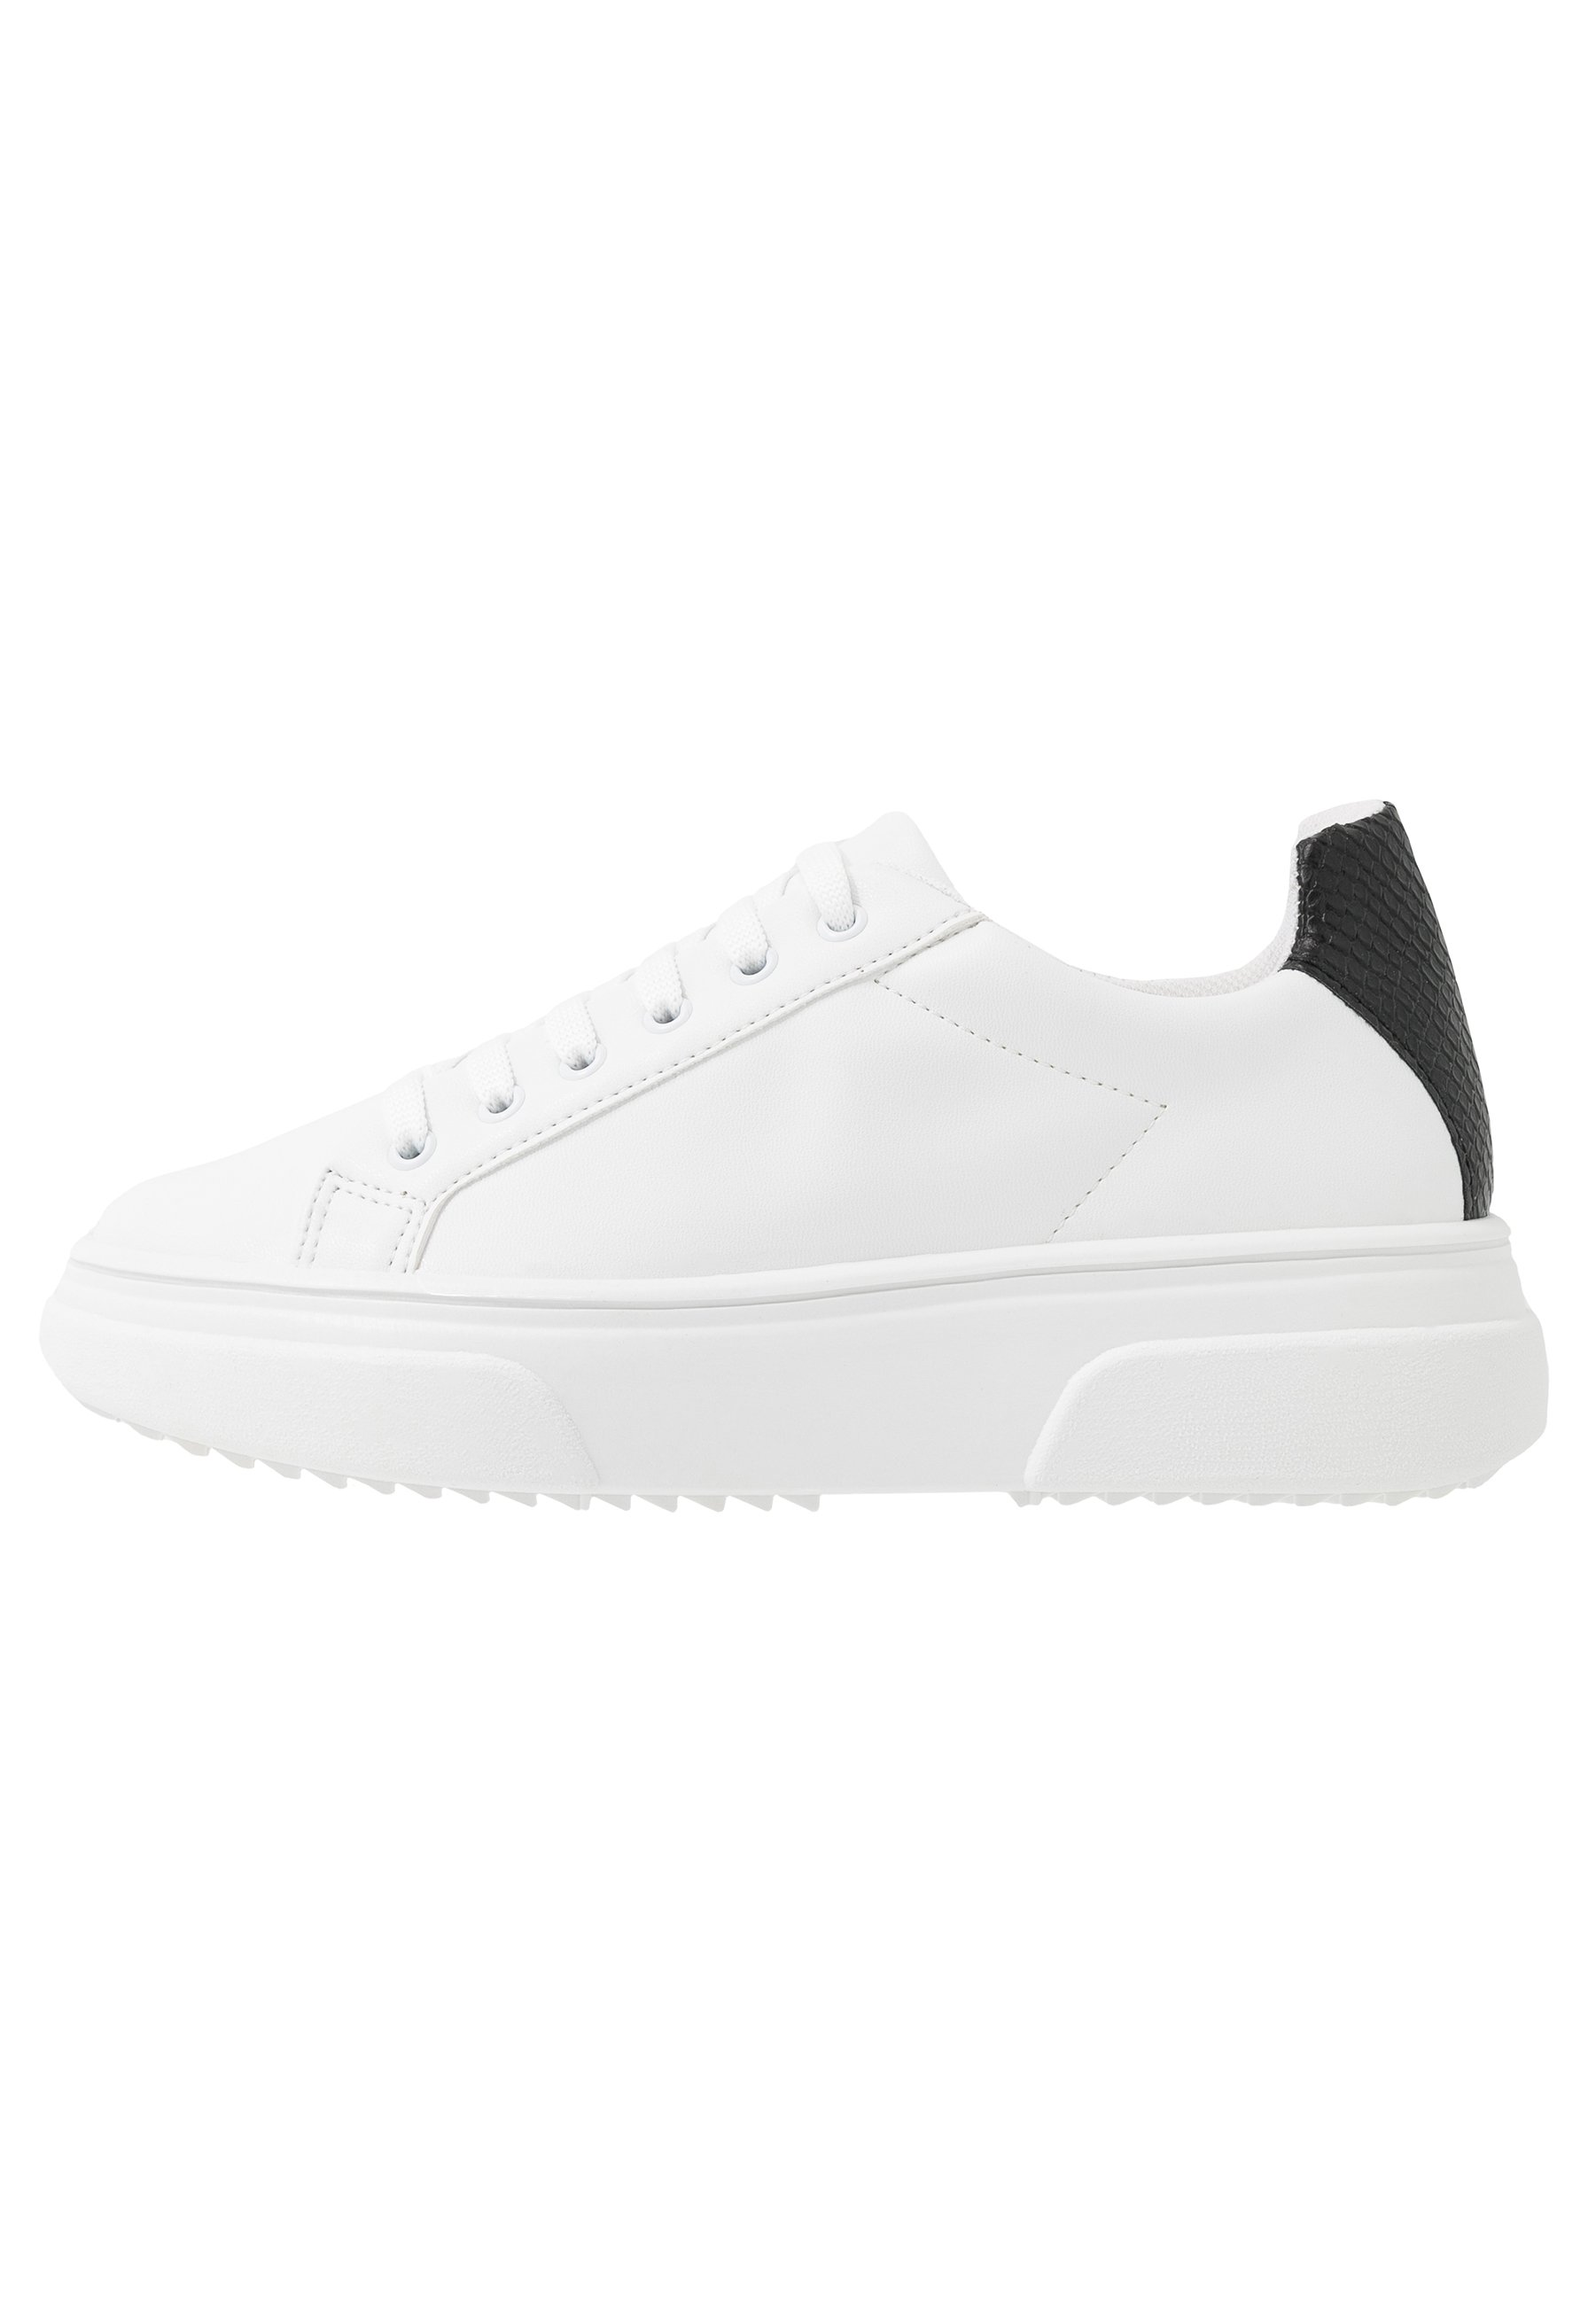 Topshop Canada Lace Up Trainer - Sneakers Laag Monochrome Goedkope Schoenen